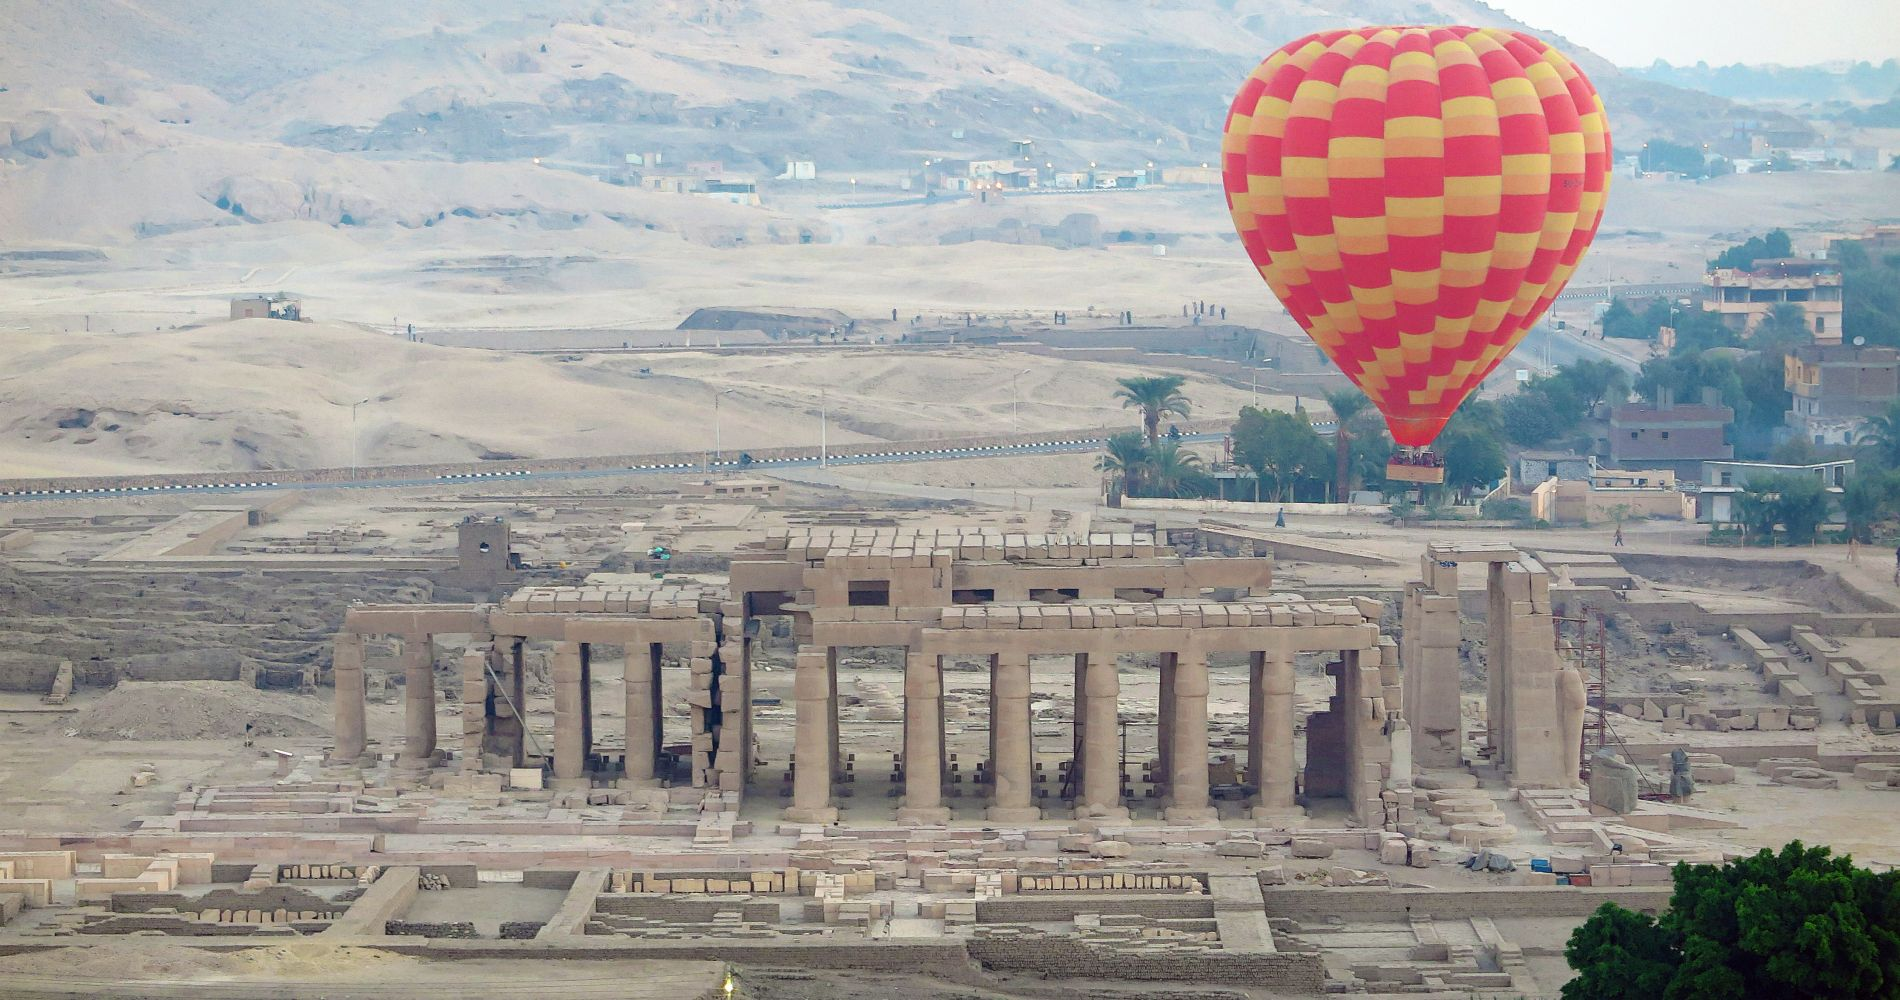 Luxor Hot Air Balloon Ride at Sunrise